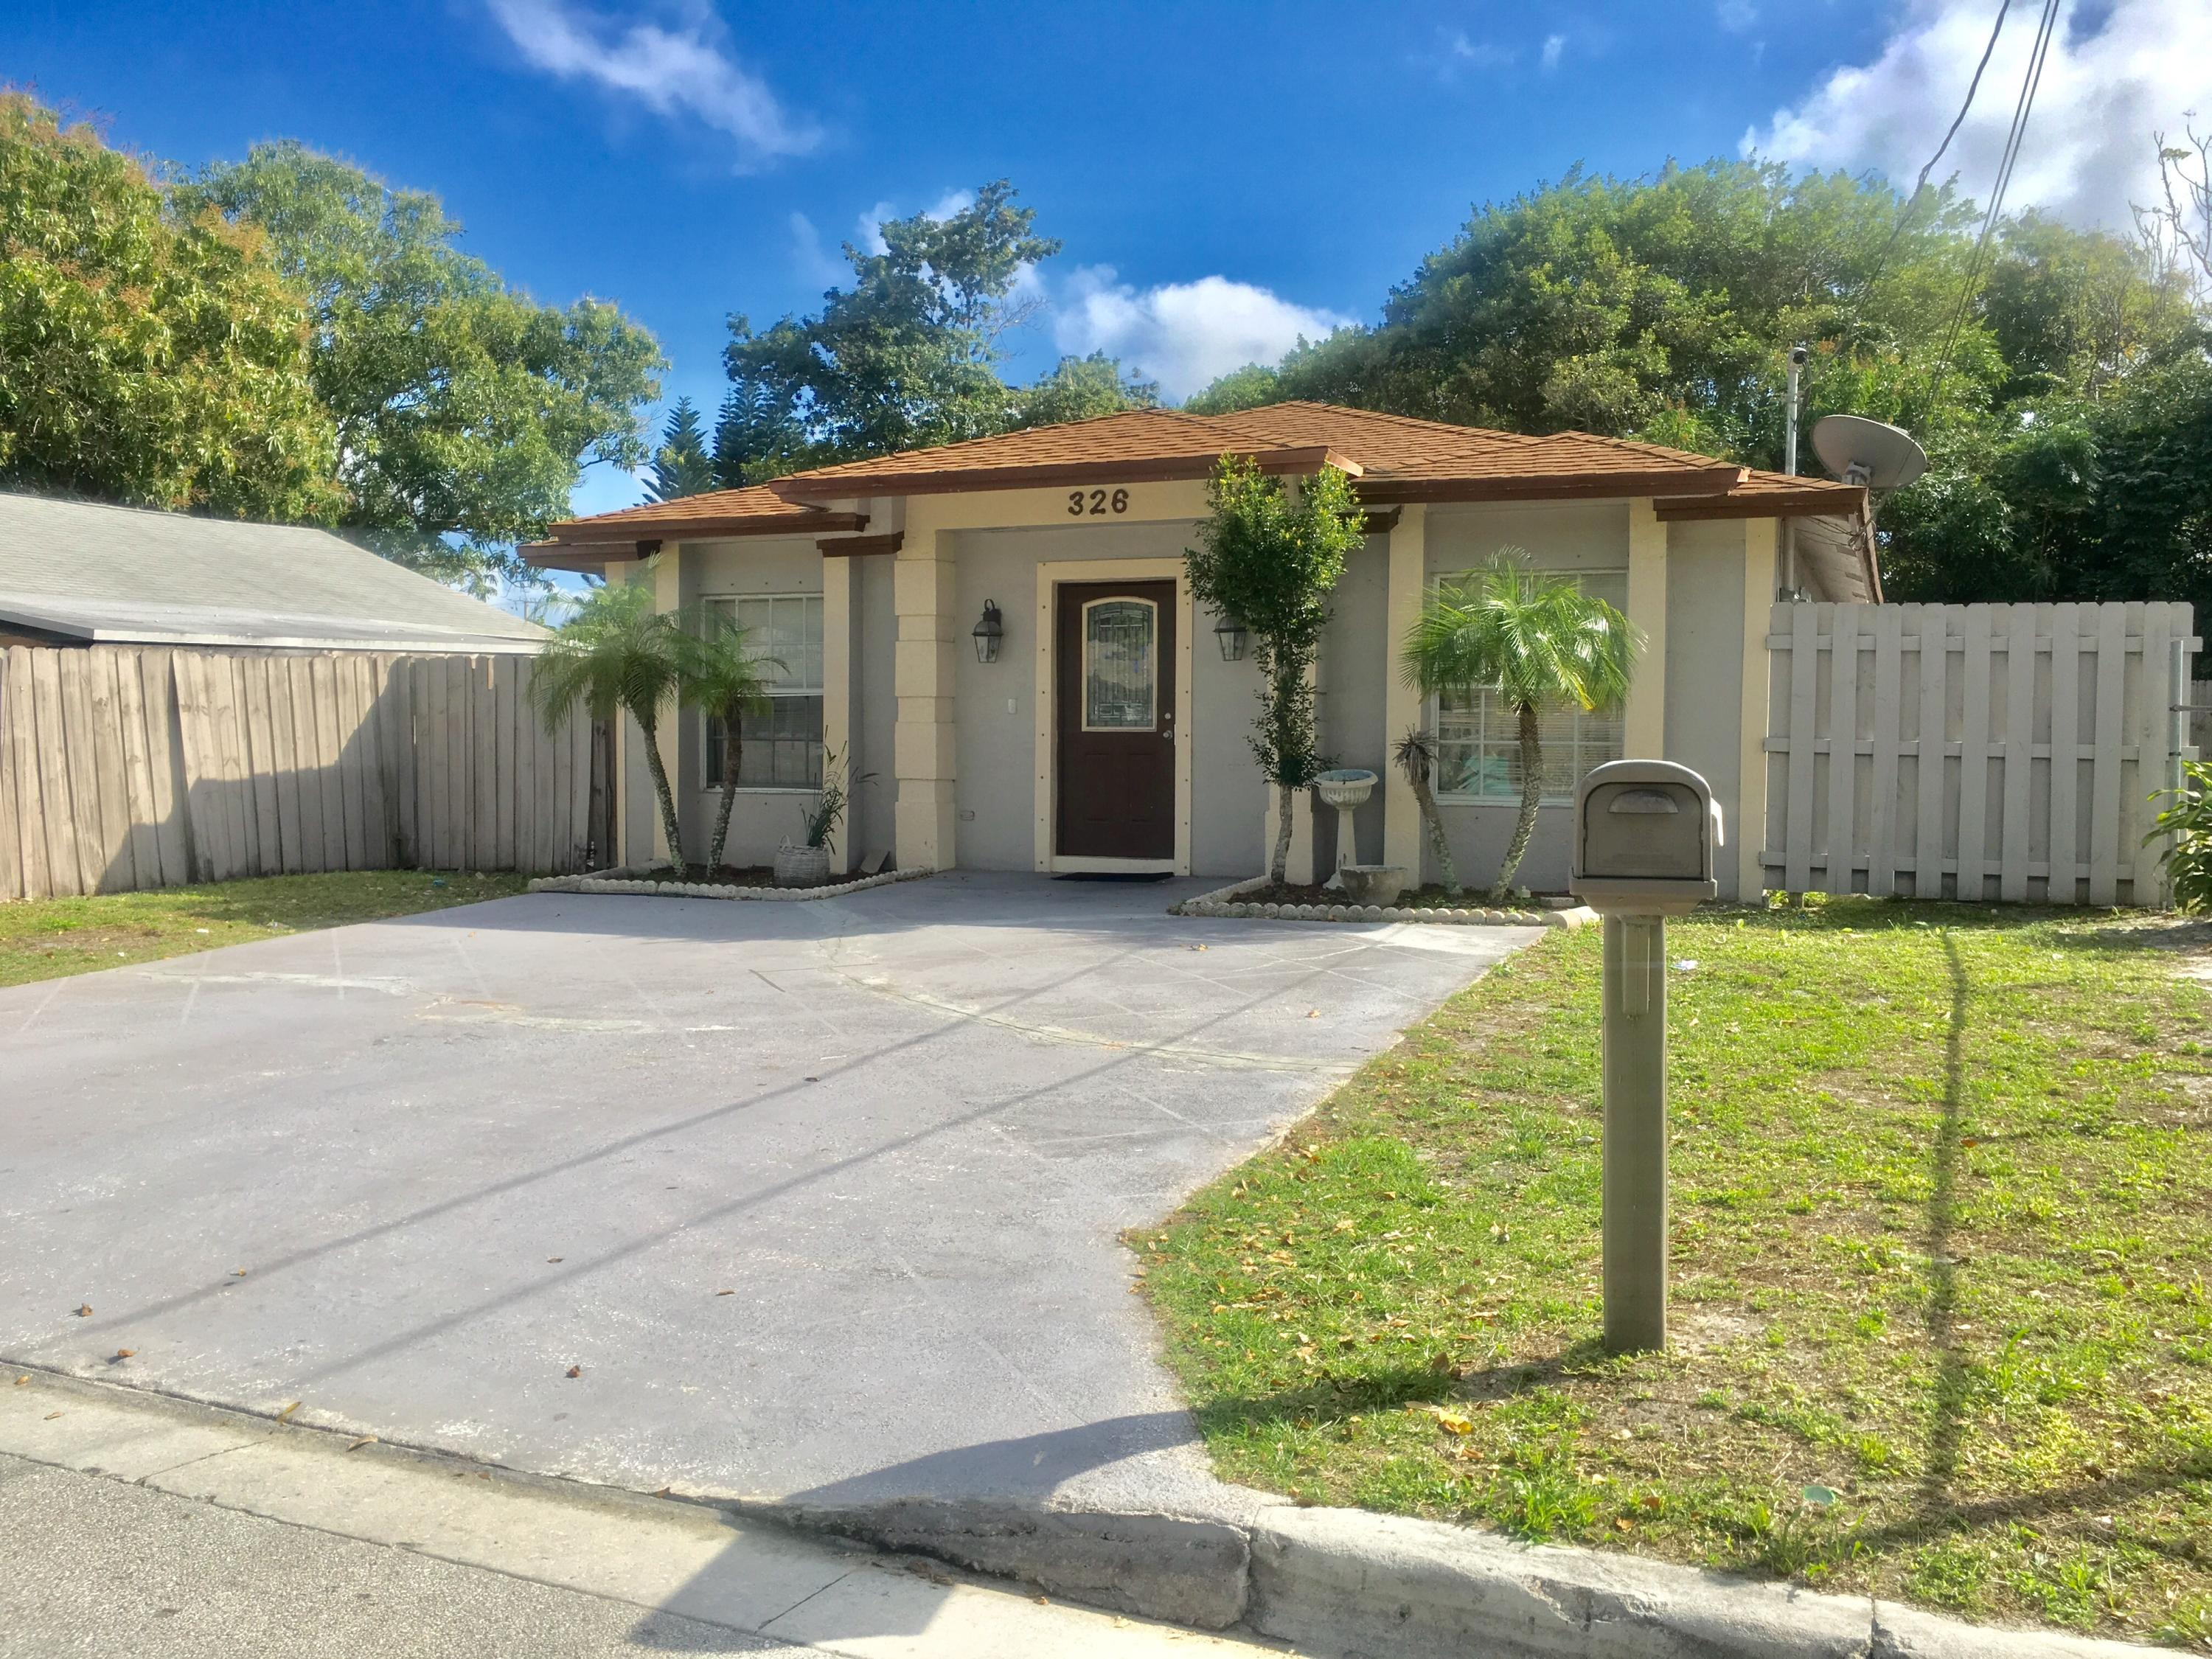 326 NE 12th Avenue Boynton Beach, FL 33435